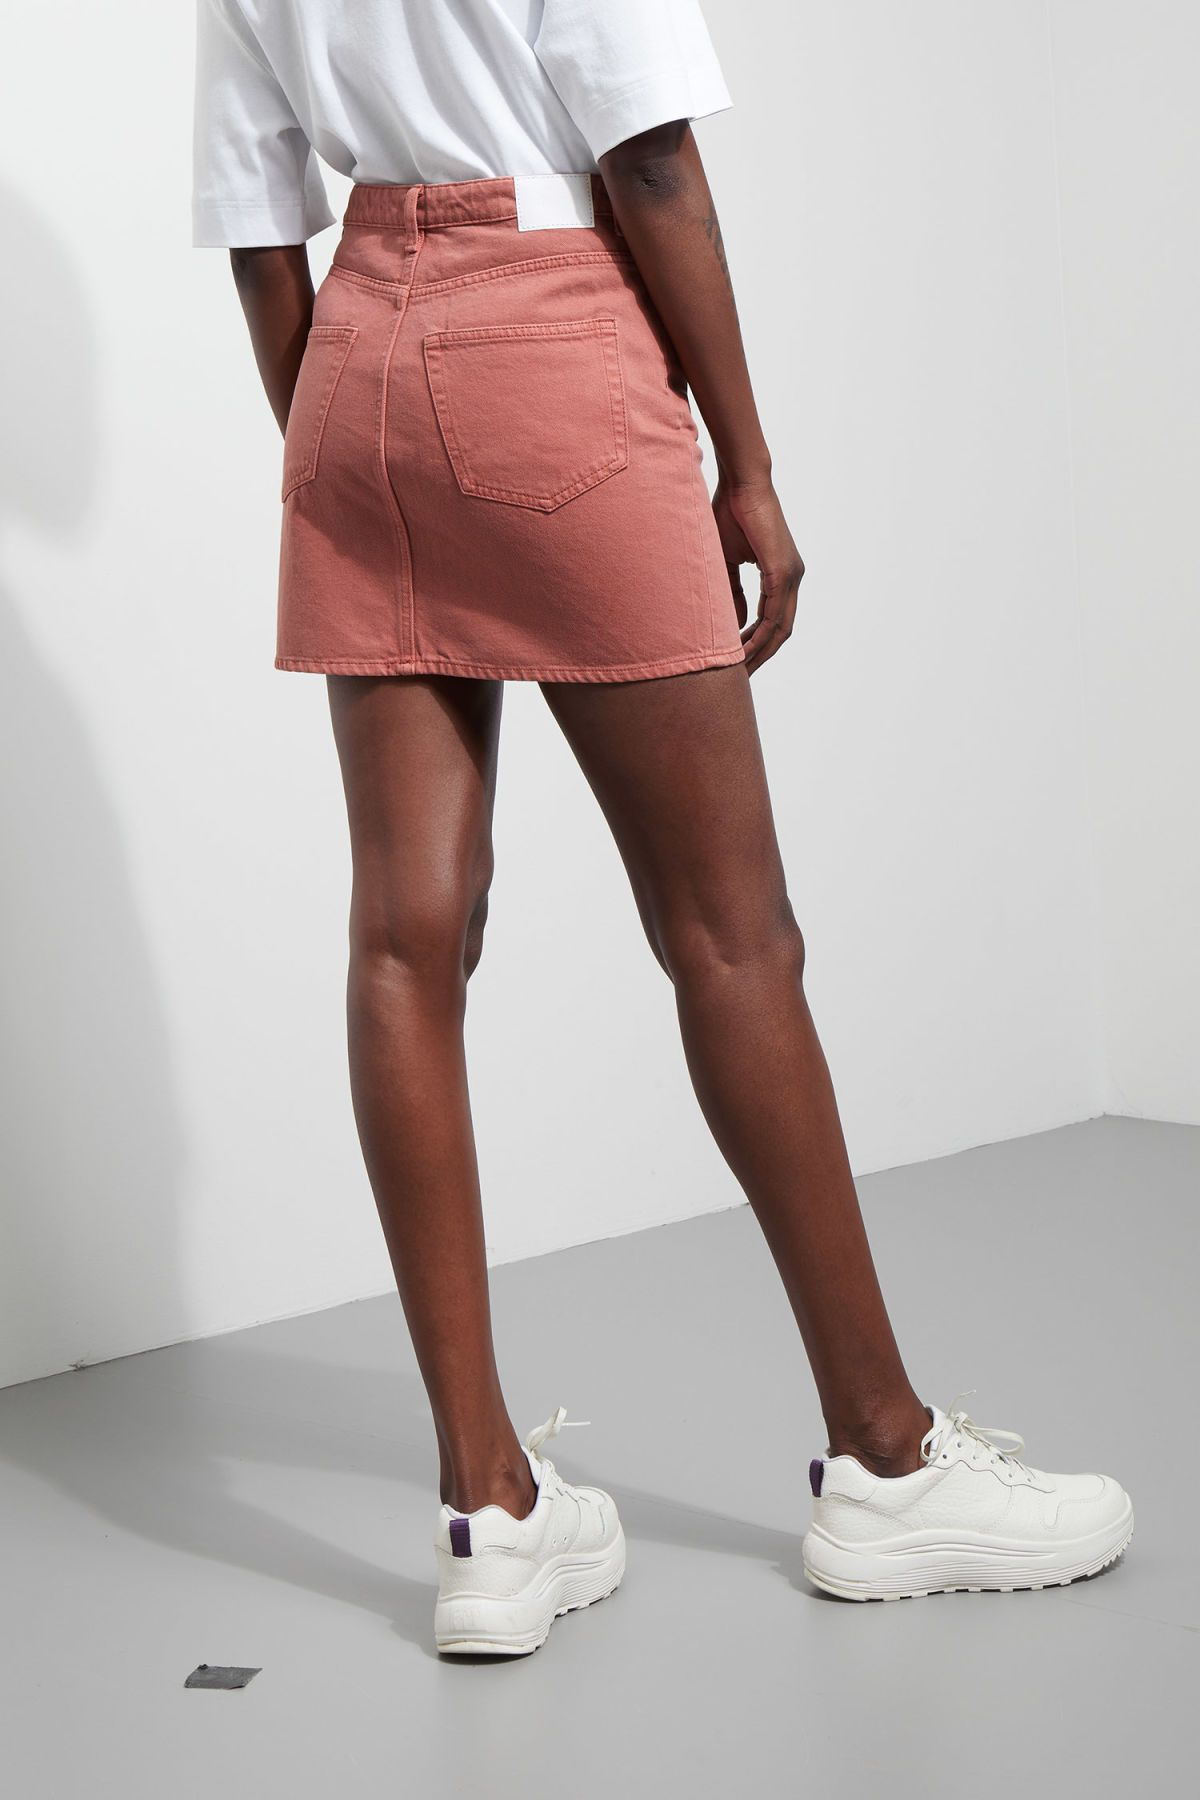 fdd993c538eb78 Model side image of Weekday null in orange Orange Skirt, Denim Mini Skirt,  Mini